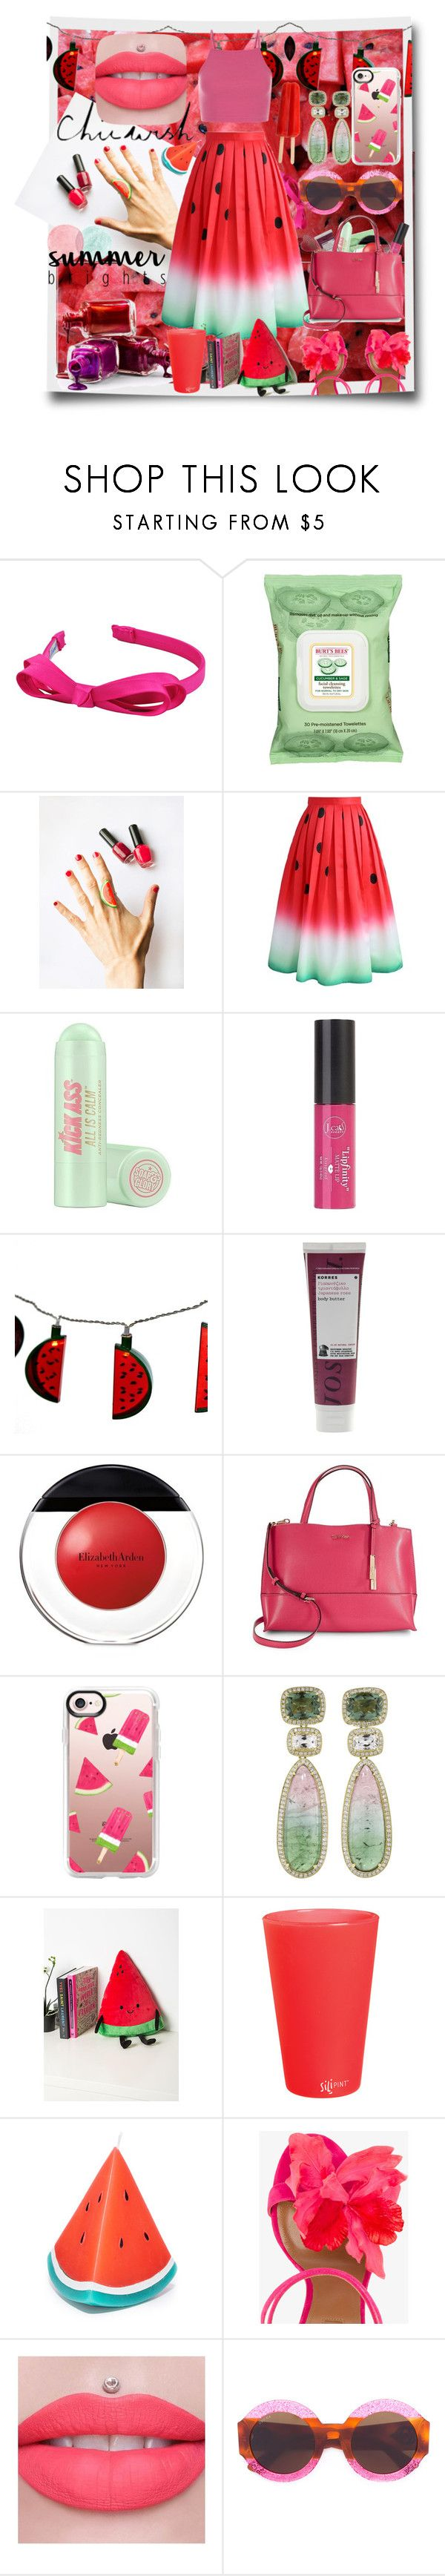 """""""#chicwish"""" by imnotyourstyle ❤ liked on Polyvore featuring L. Erickson, Burt's Bees, Chicwish, Soap & Glory, Charlotte Russe, Korres, Elizabeth Arden, Calvin Klein, Casetify and Dana Rebecca Designs"""